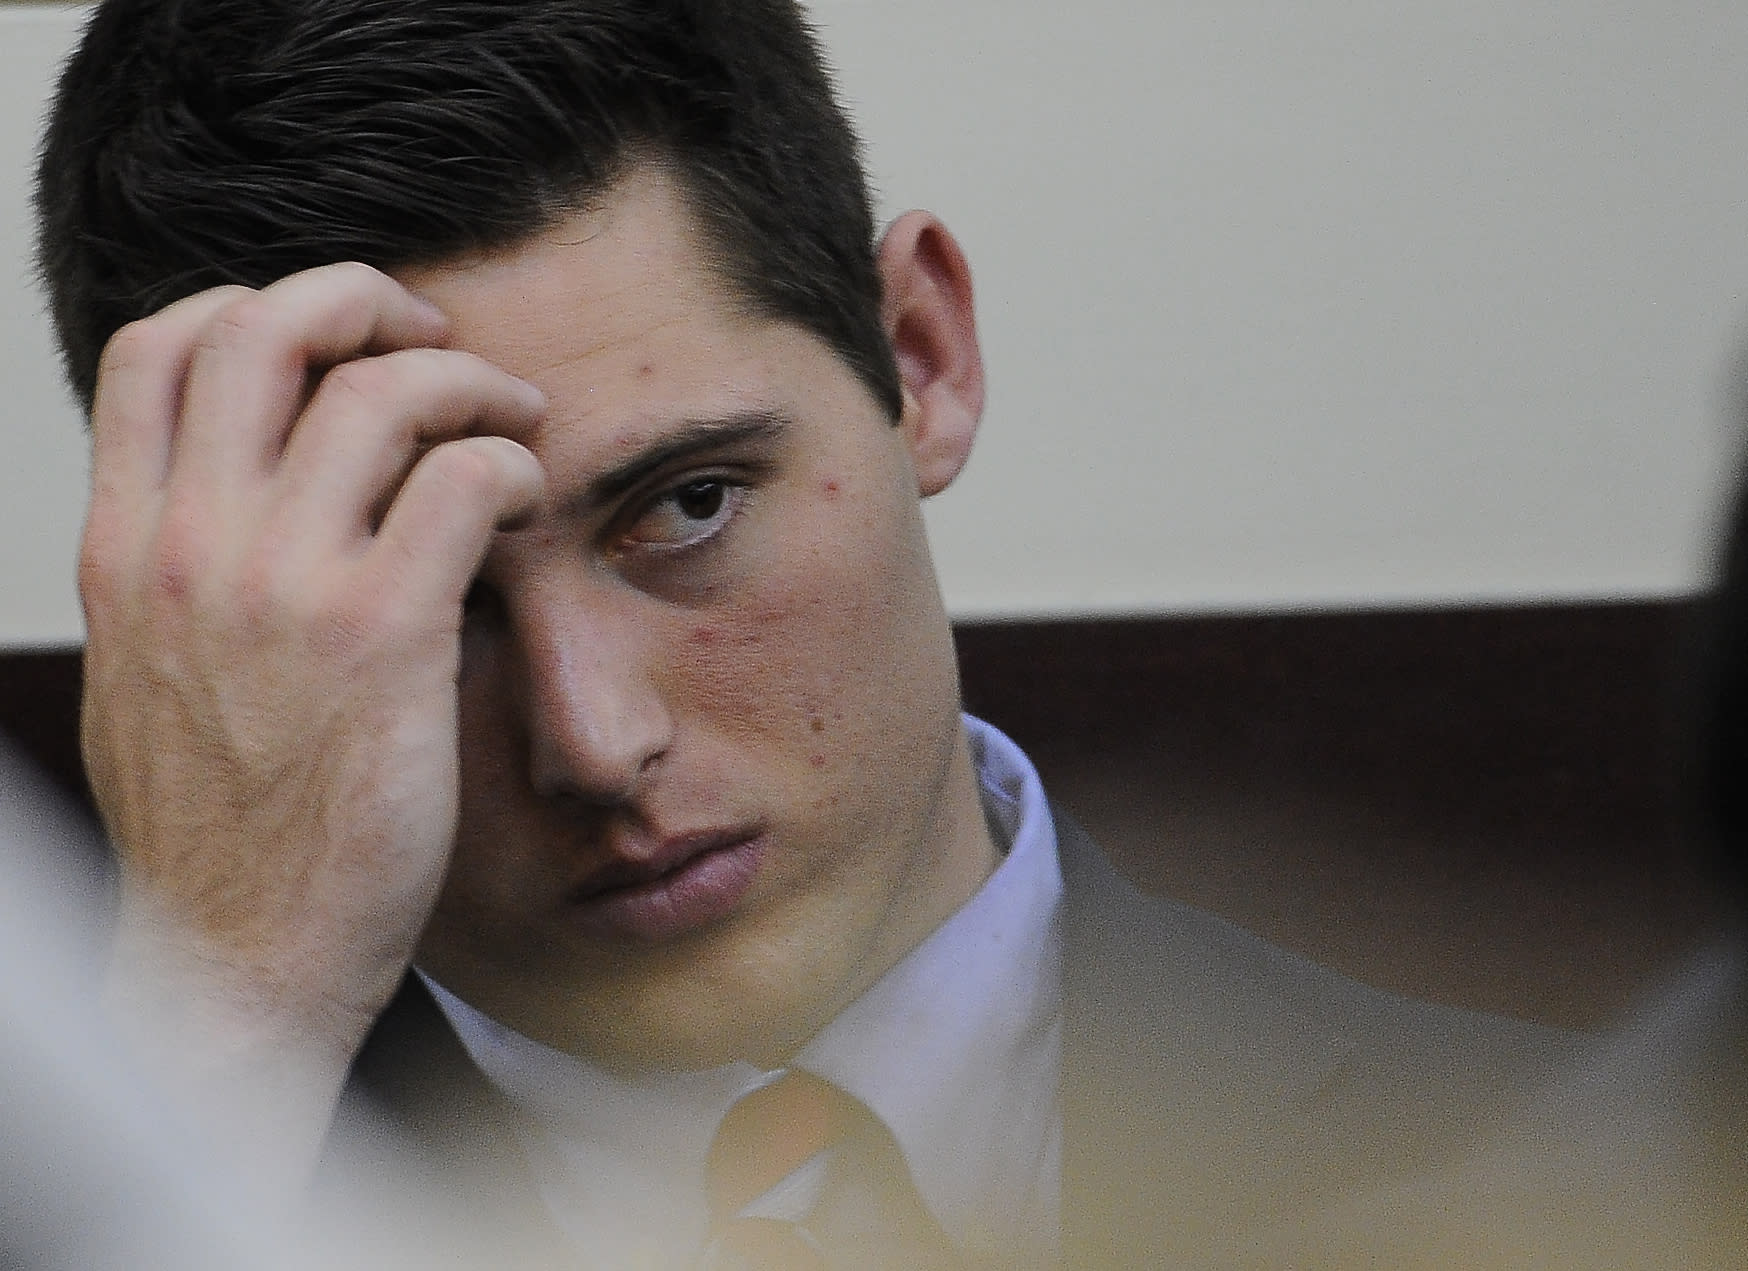 Jury convicts 2 ex-Vanderbilt players of raping woman